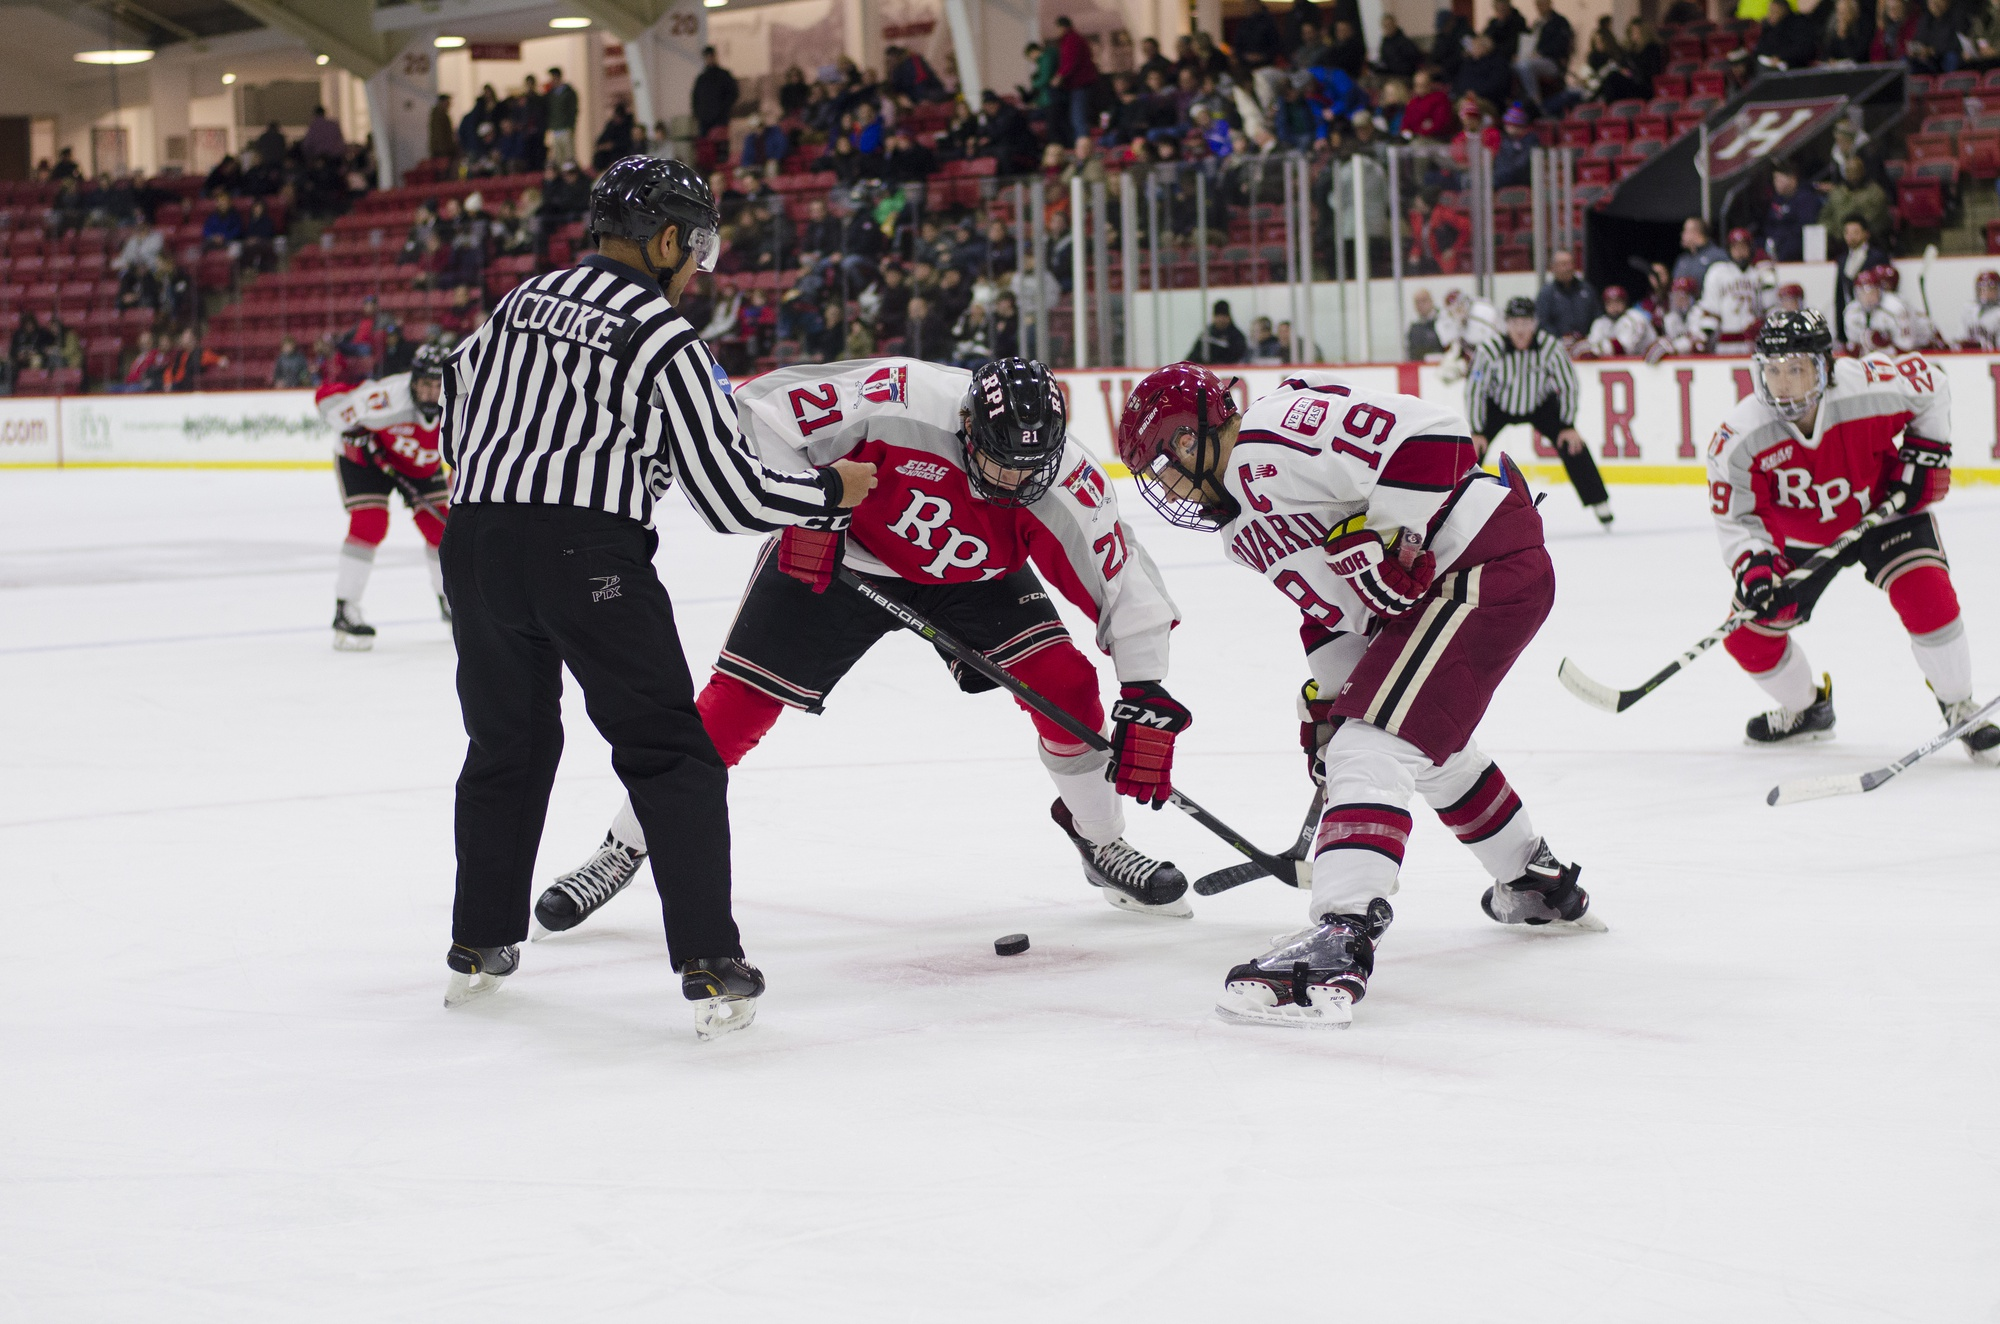 The Crimson nabbed a pair of ECAC wins this weekend and has taken another step in the road back to a top spot in the conference by surpassing .500.